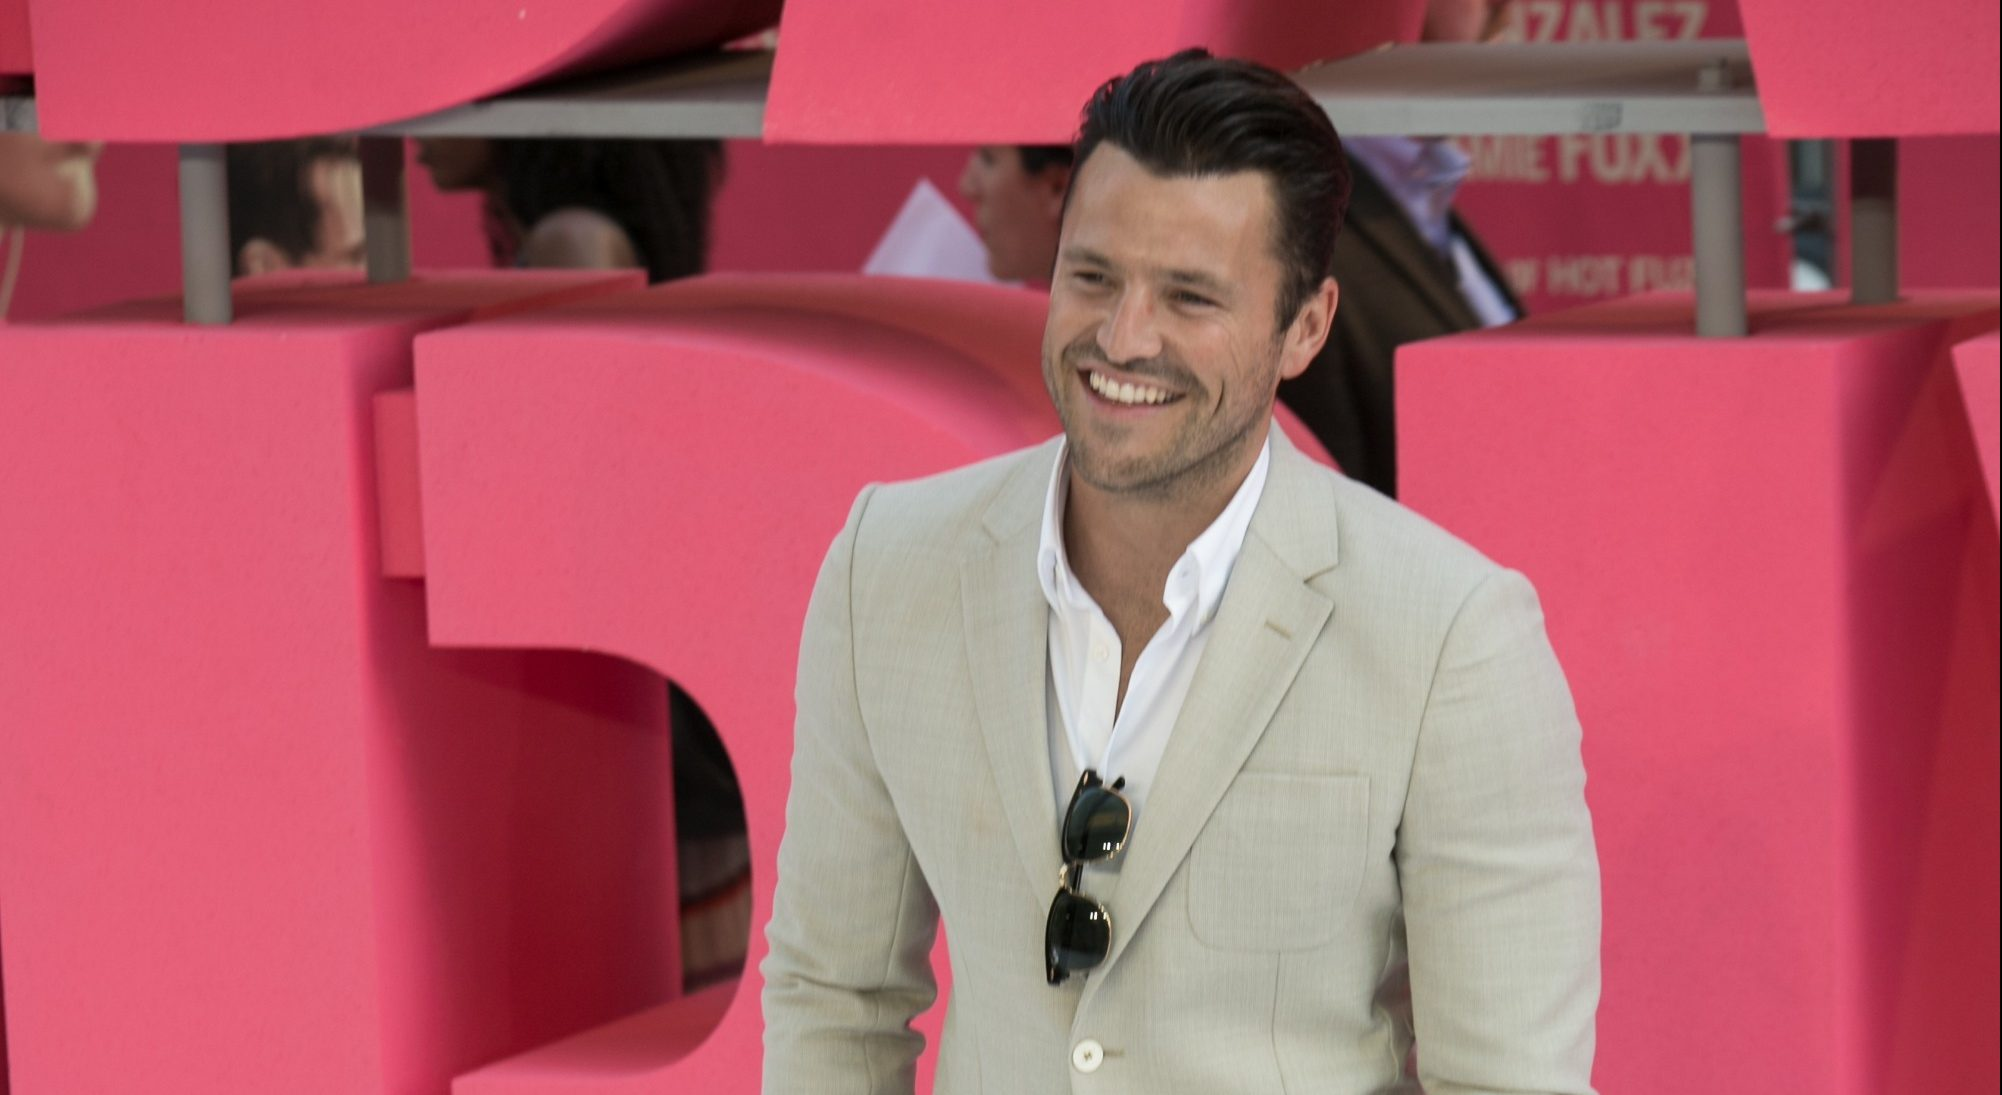 Mark Wright has picked up some VERY famous pals in LA ...